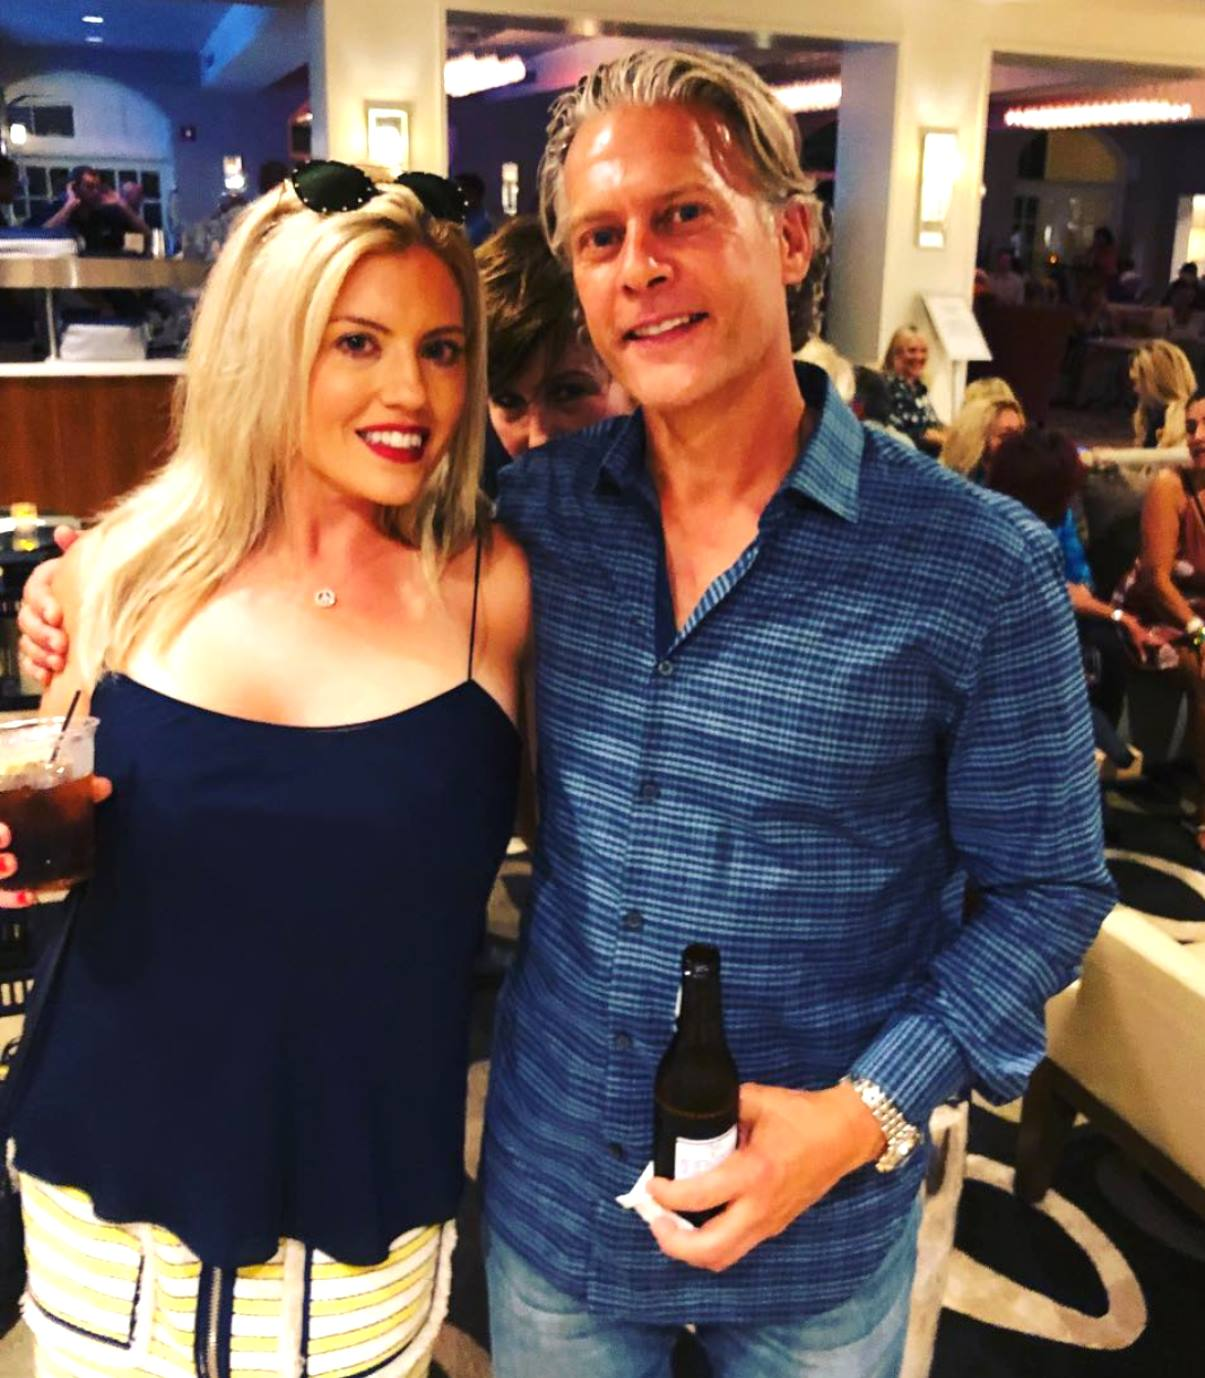 RHOC David Beador and girlfriend Lesley Cook Moving In Together